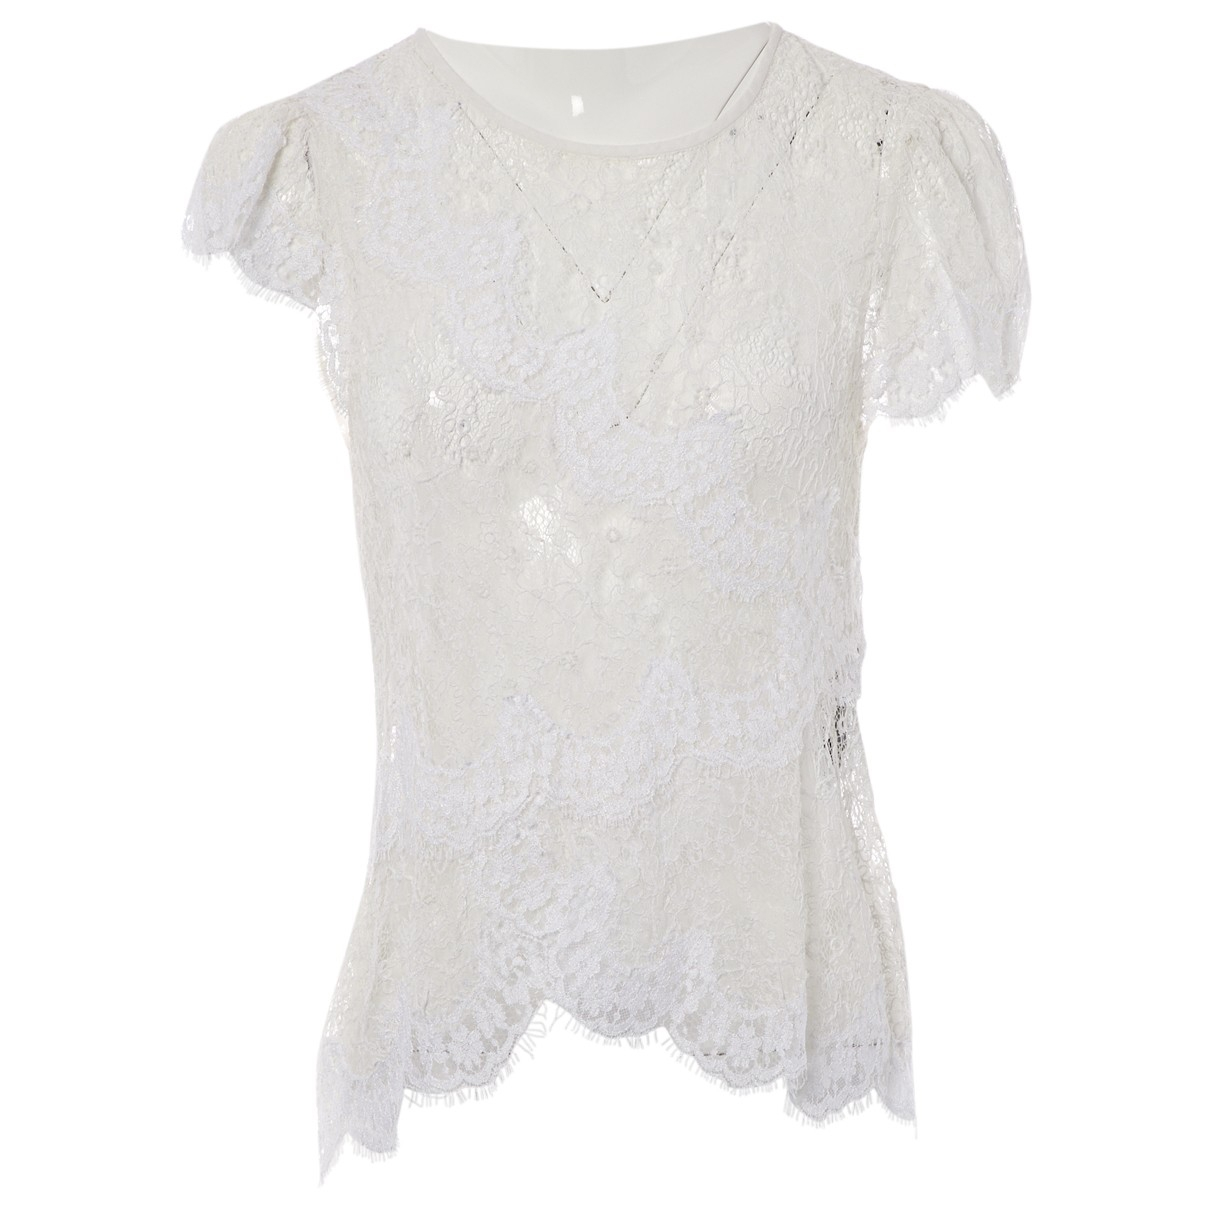 Isabel Marant \N Top in  Weiss Spitze